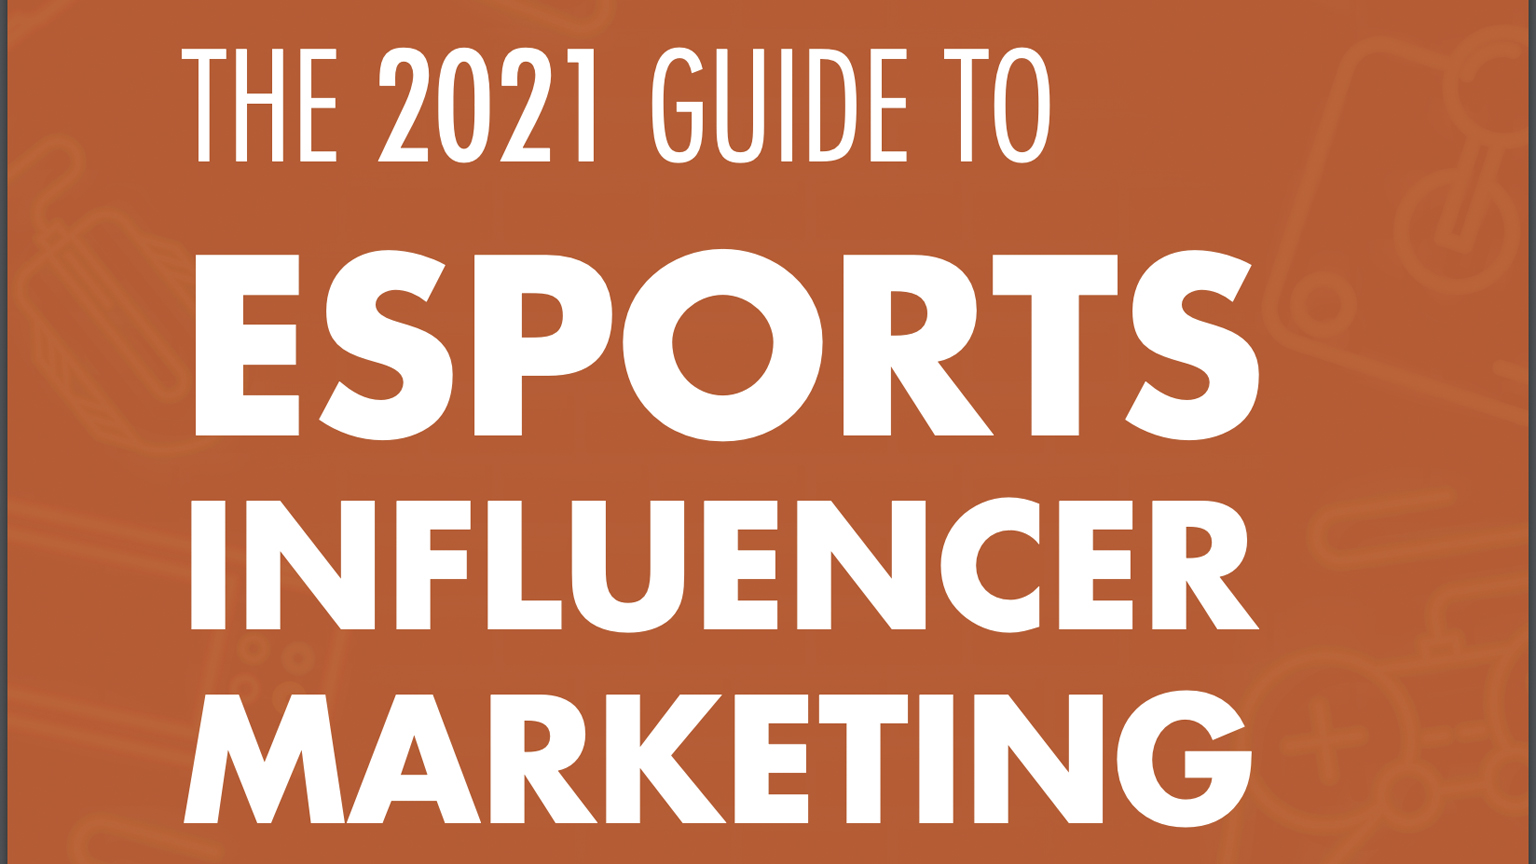 Esports Group Influencer Marketing